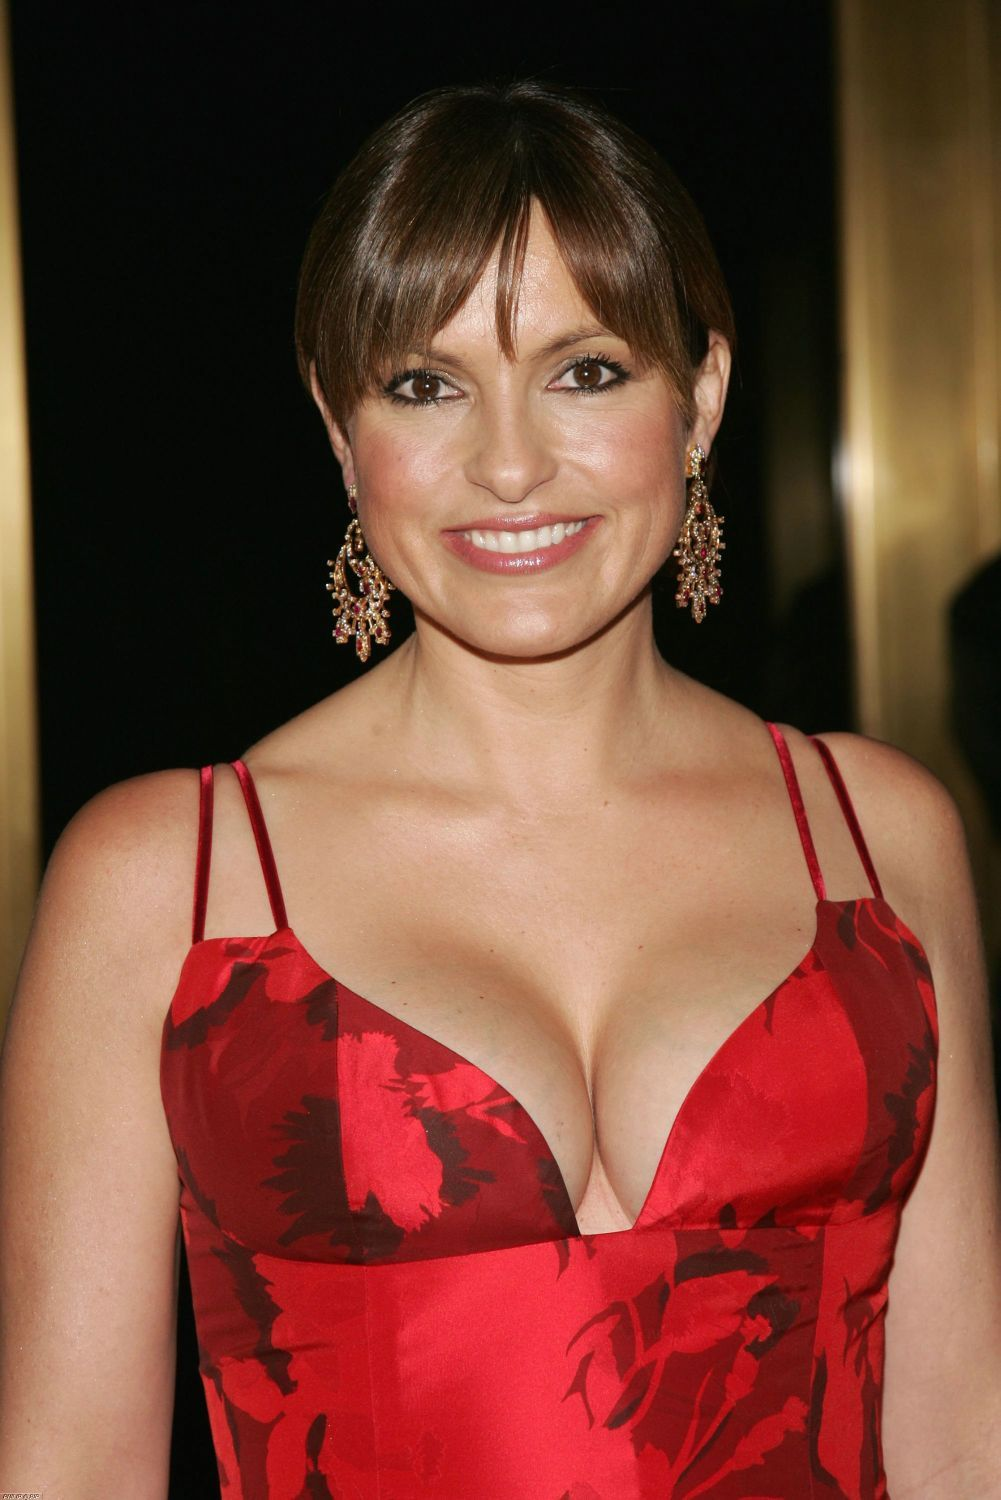 mariska hargitay hot cleavage